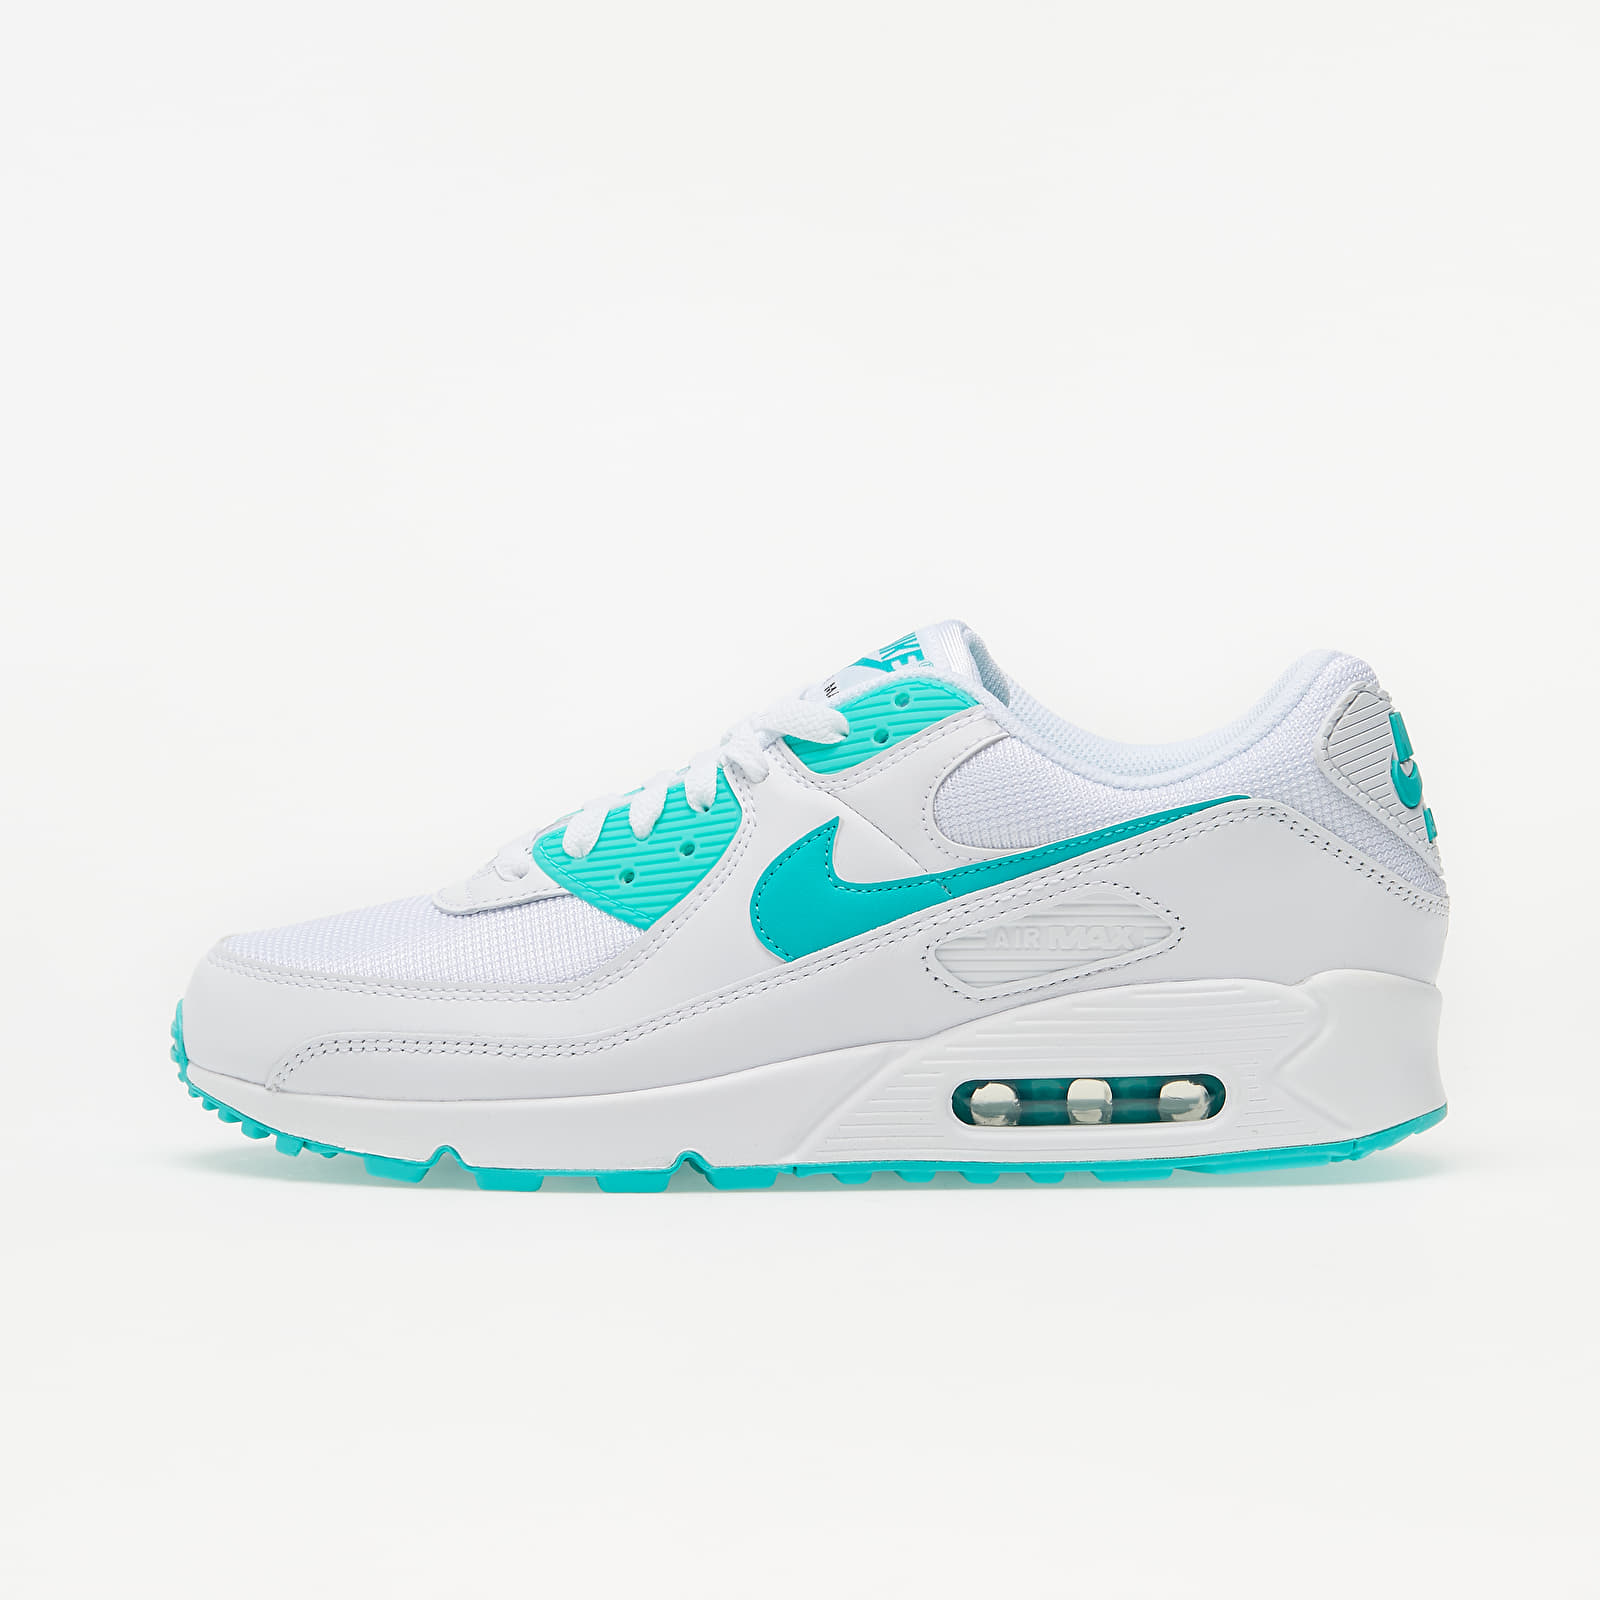 Nike Air Max 90 White/ Hyper Jade-Black CT1028-102